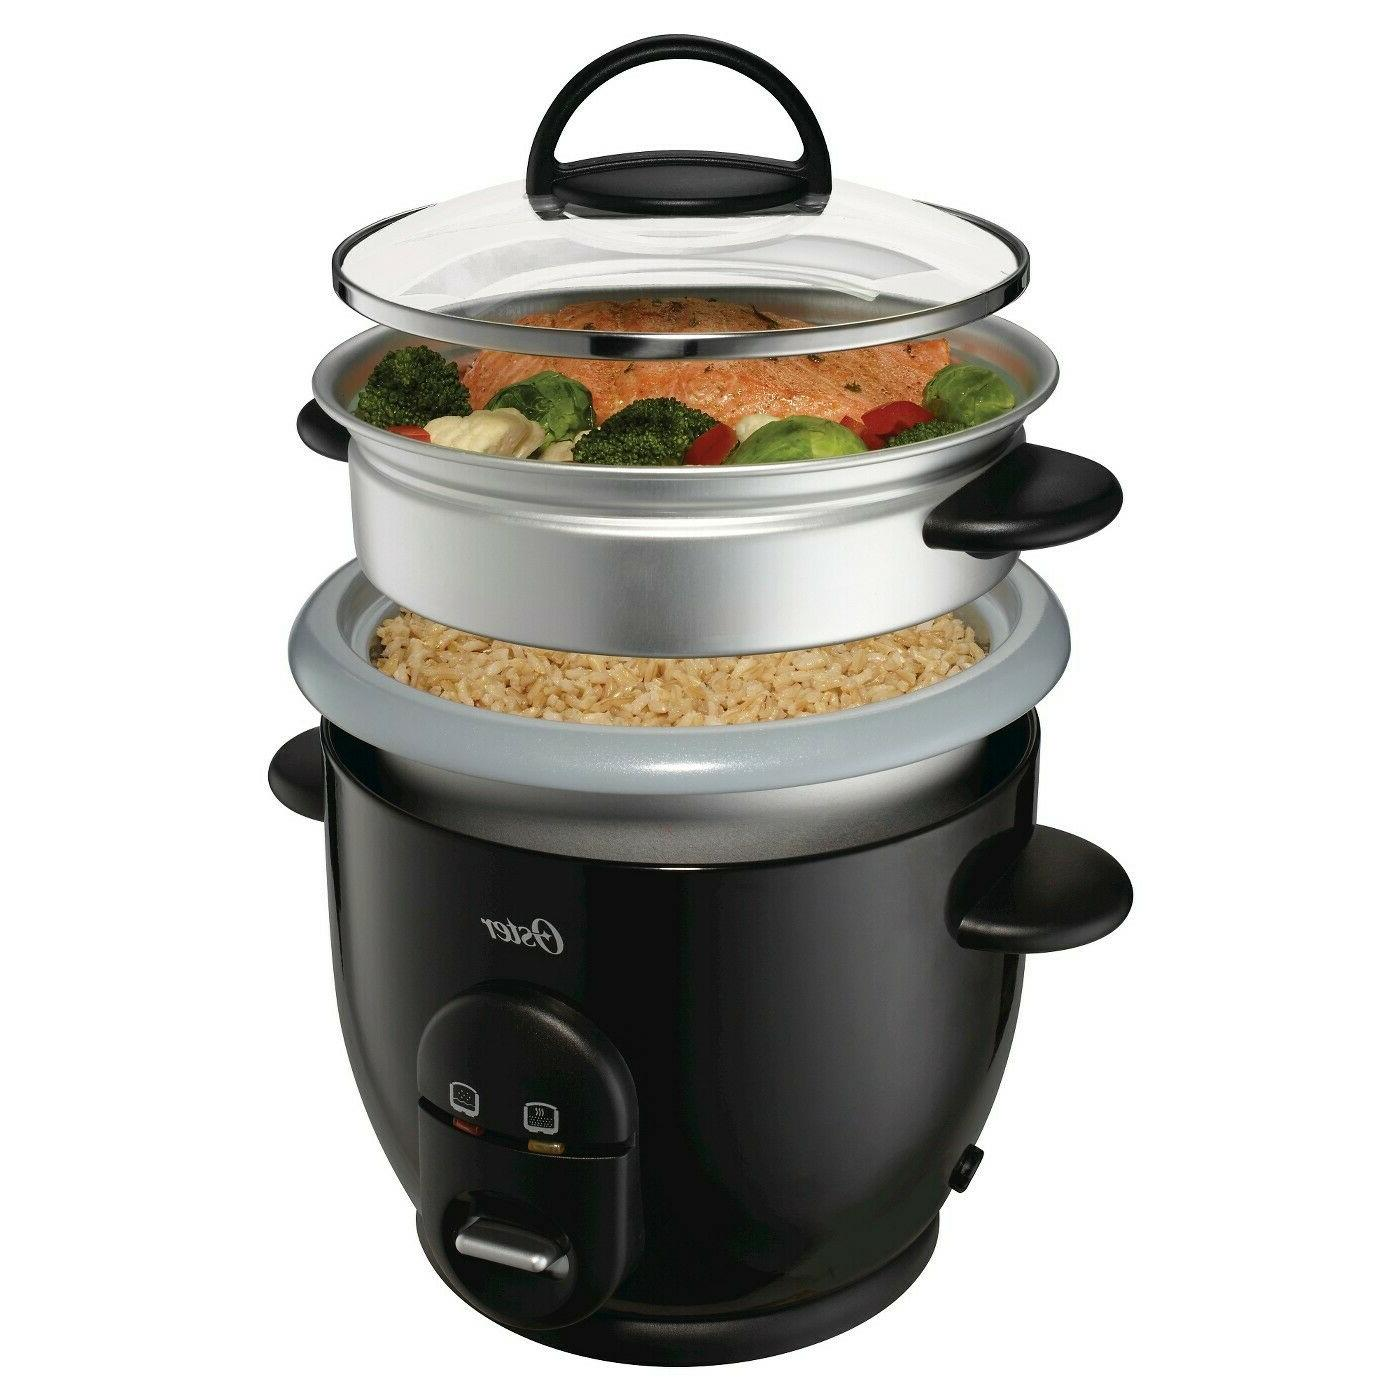 6 cup rice cooker with steamer durable